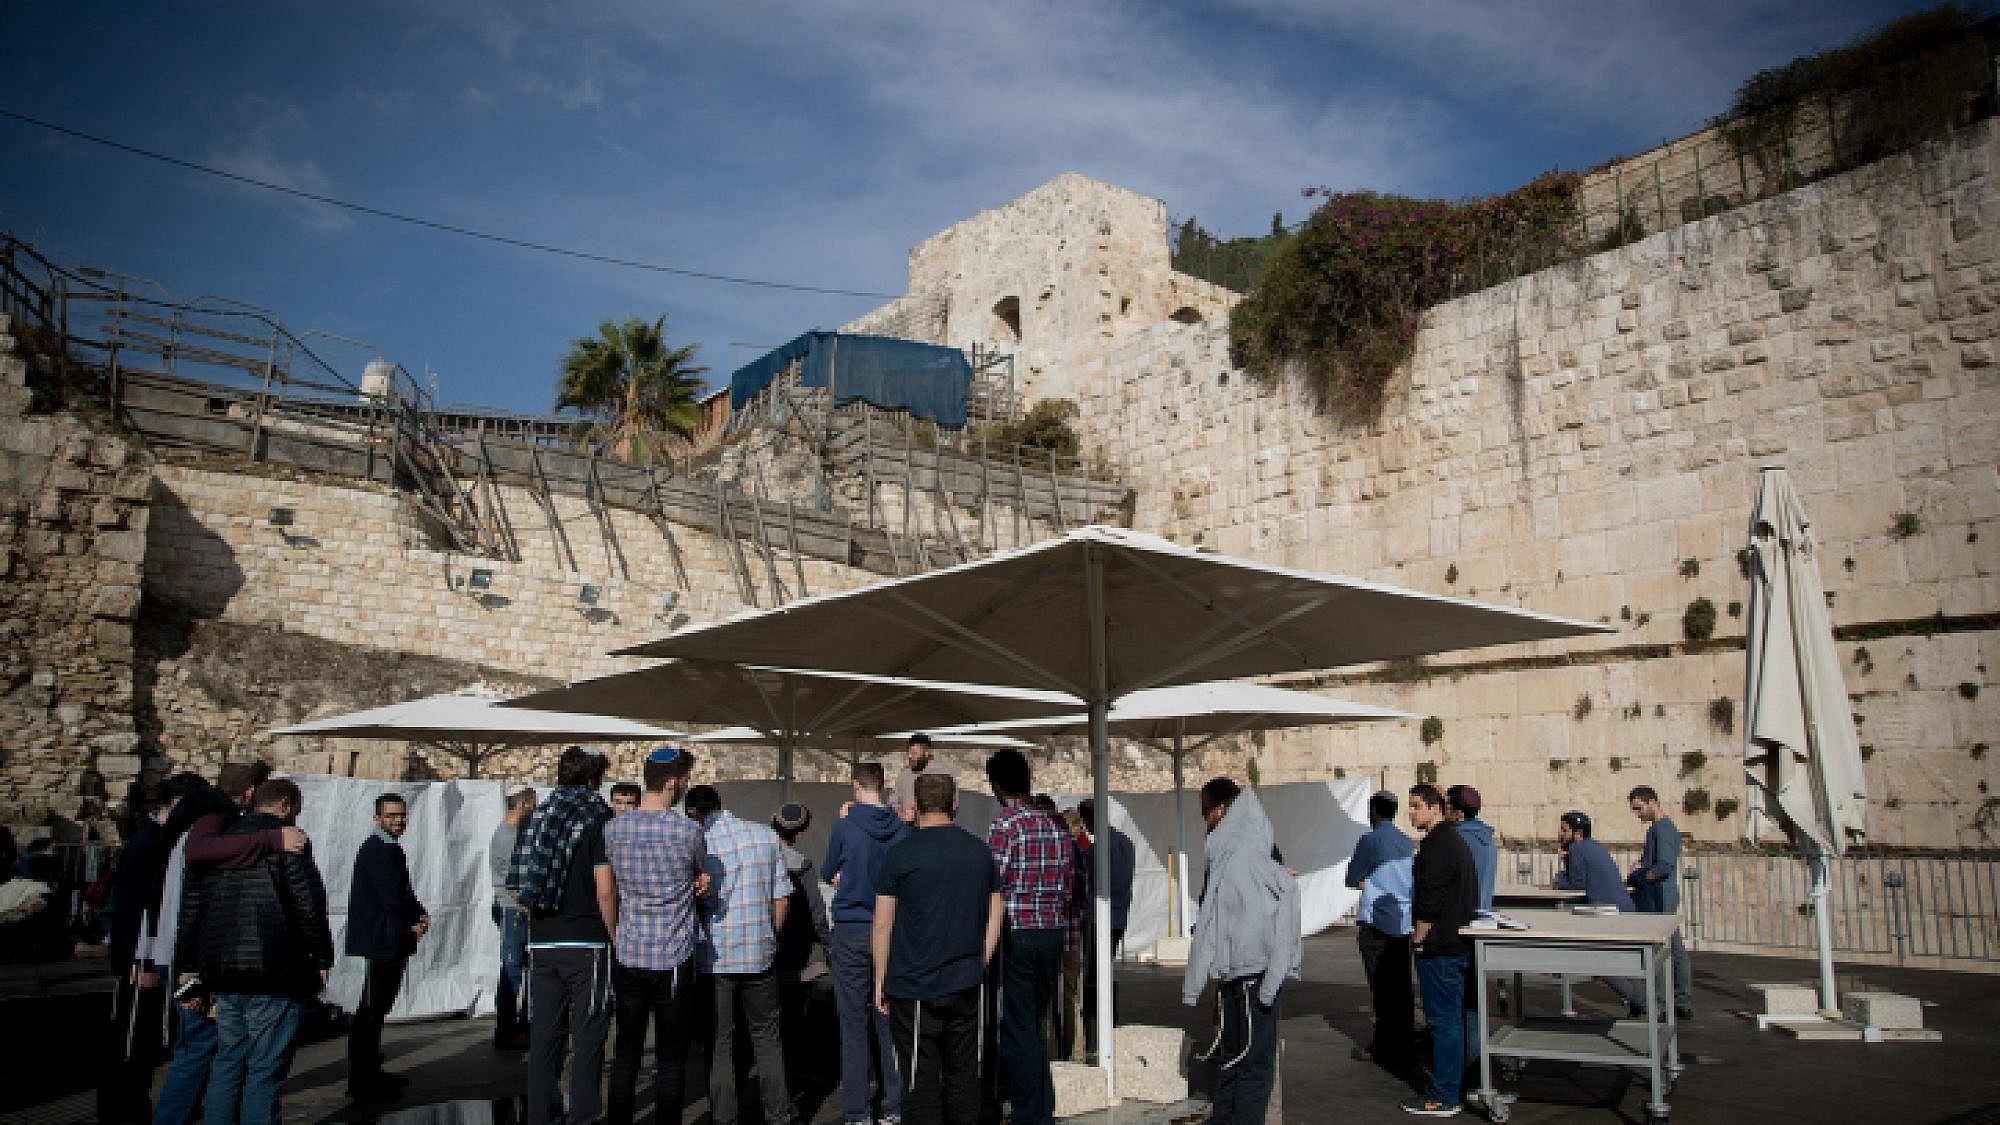 Jews pray at the mixed-gender prayer section at the Western Wall in Jerusalem's Old City on Jan. 3, 2018. Photo by Yonatan Sindel/Flash90.